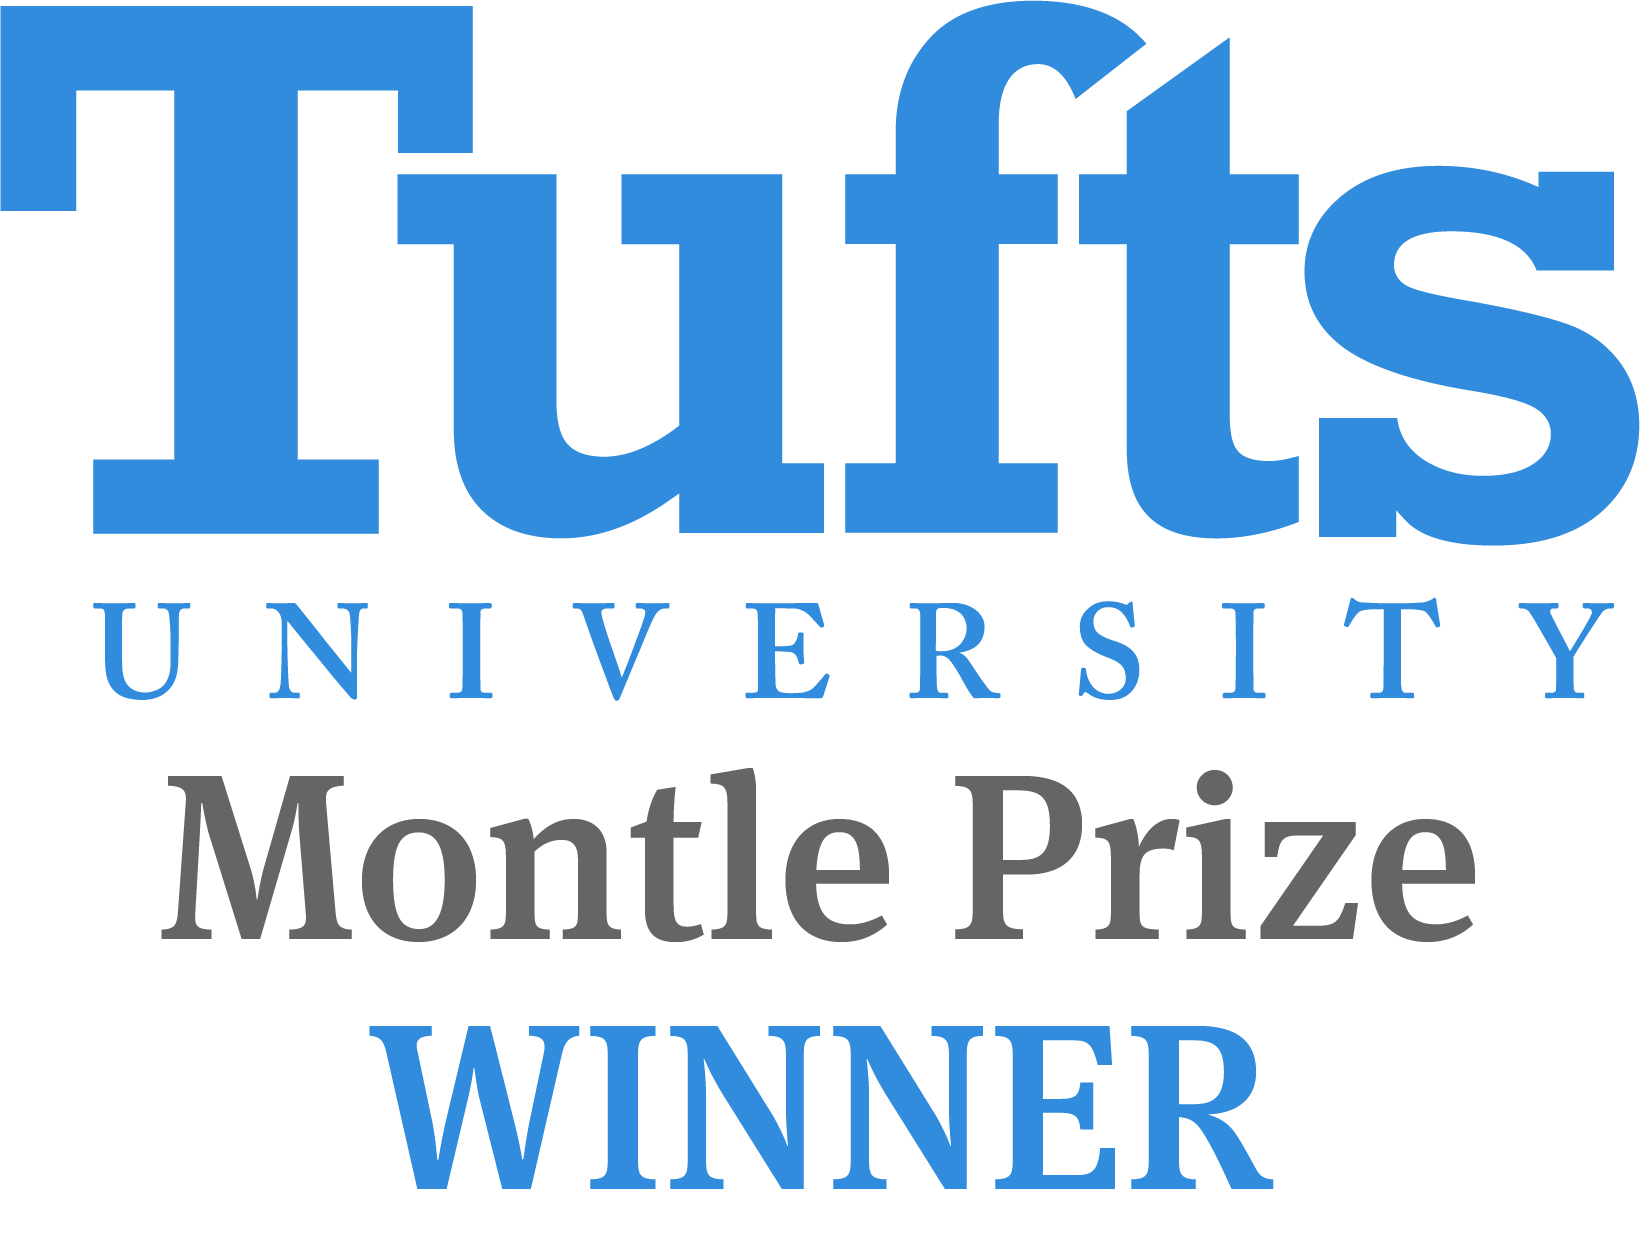 Montle Prize Winner.png